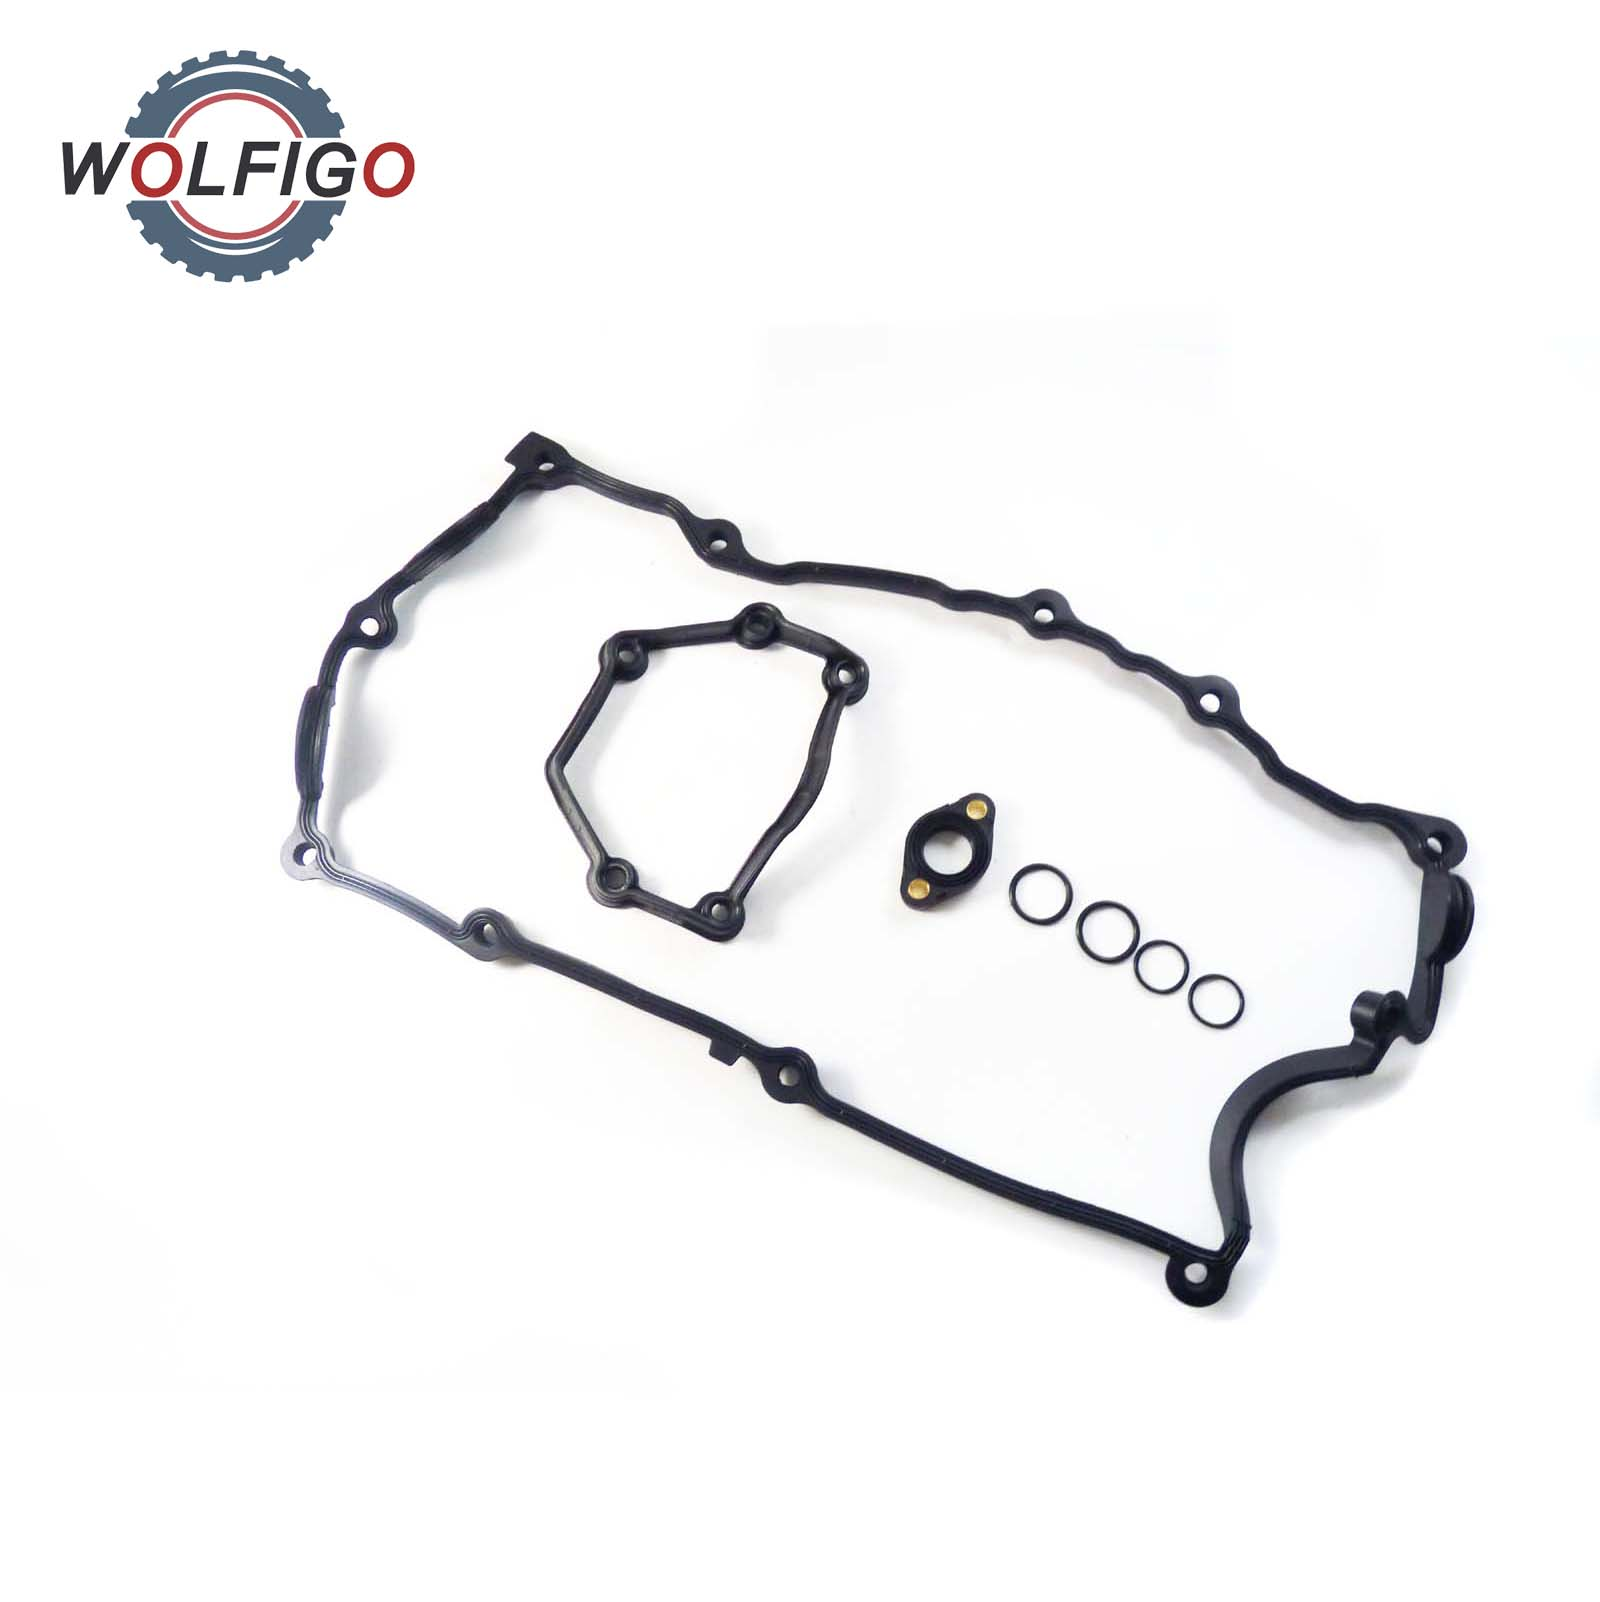 Motorcycle Cg220cc Air Cooled Water Cooled Cylinder Head